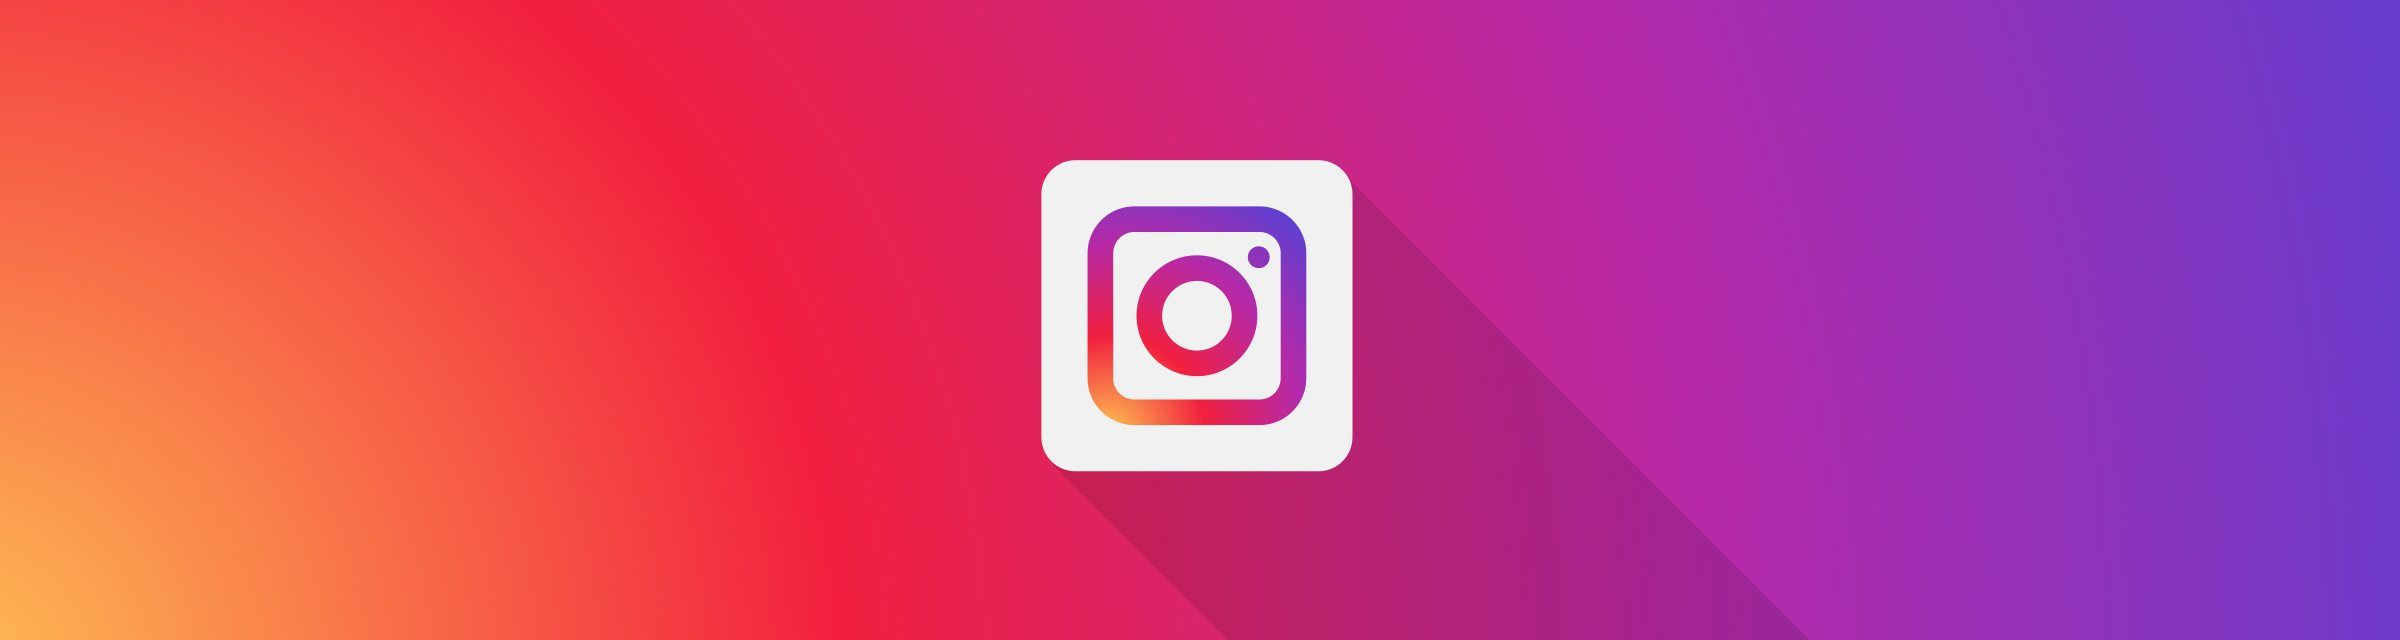 "#Blog: ""Instagram Best Practices"" [Read: http://graphicd-signs.com/social-media/instagram-best-practices/] #socialmedia #bestpractices #online #social #Instagram #marketing #advertising"